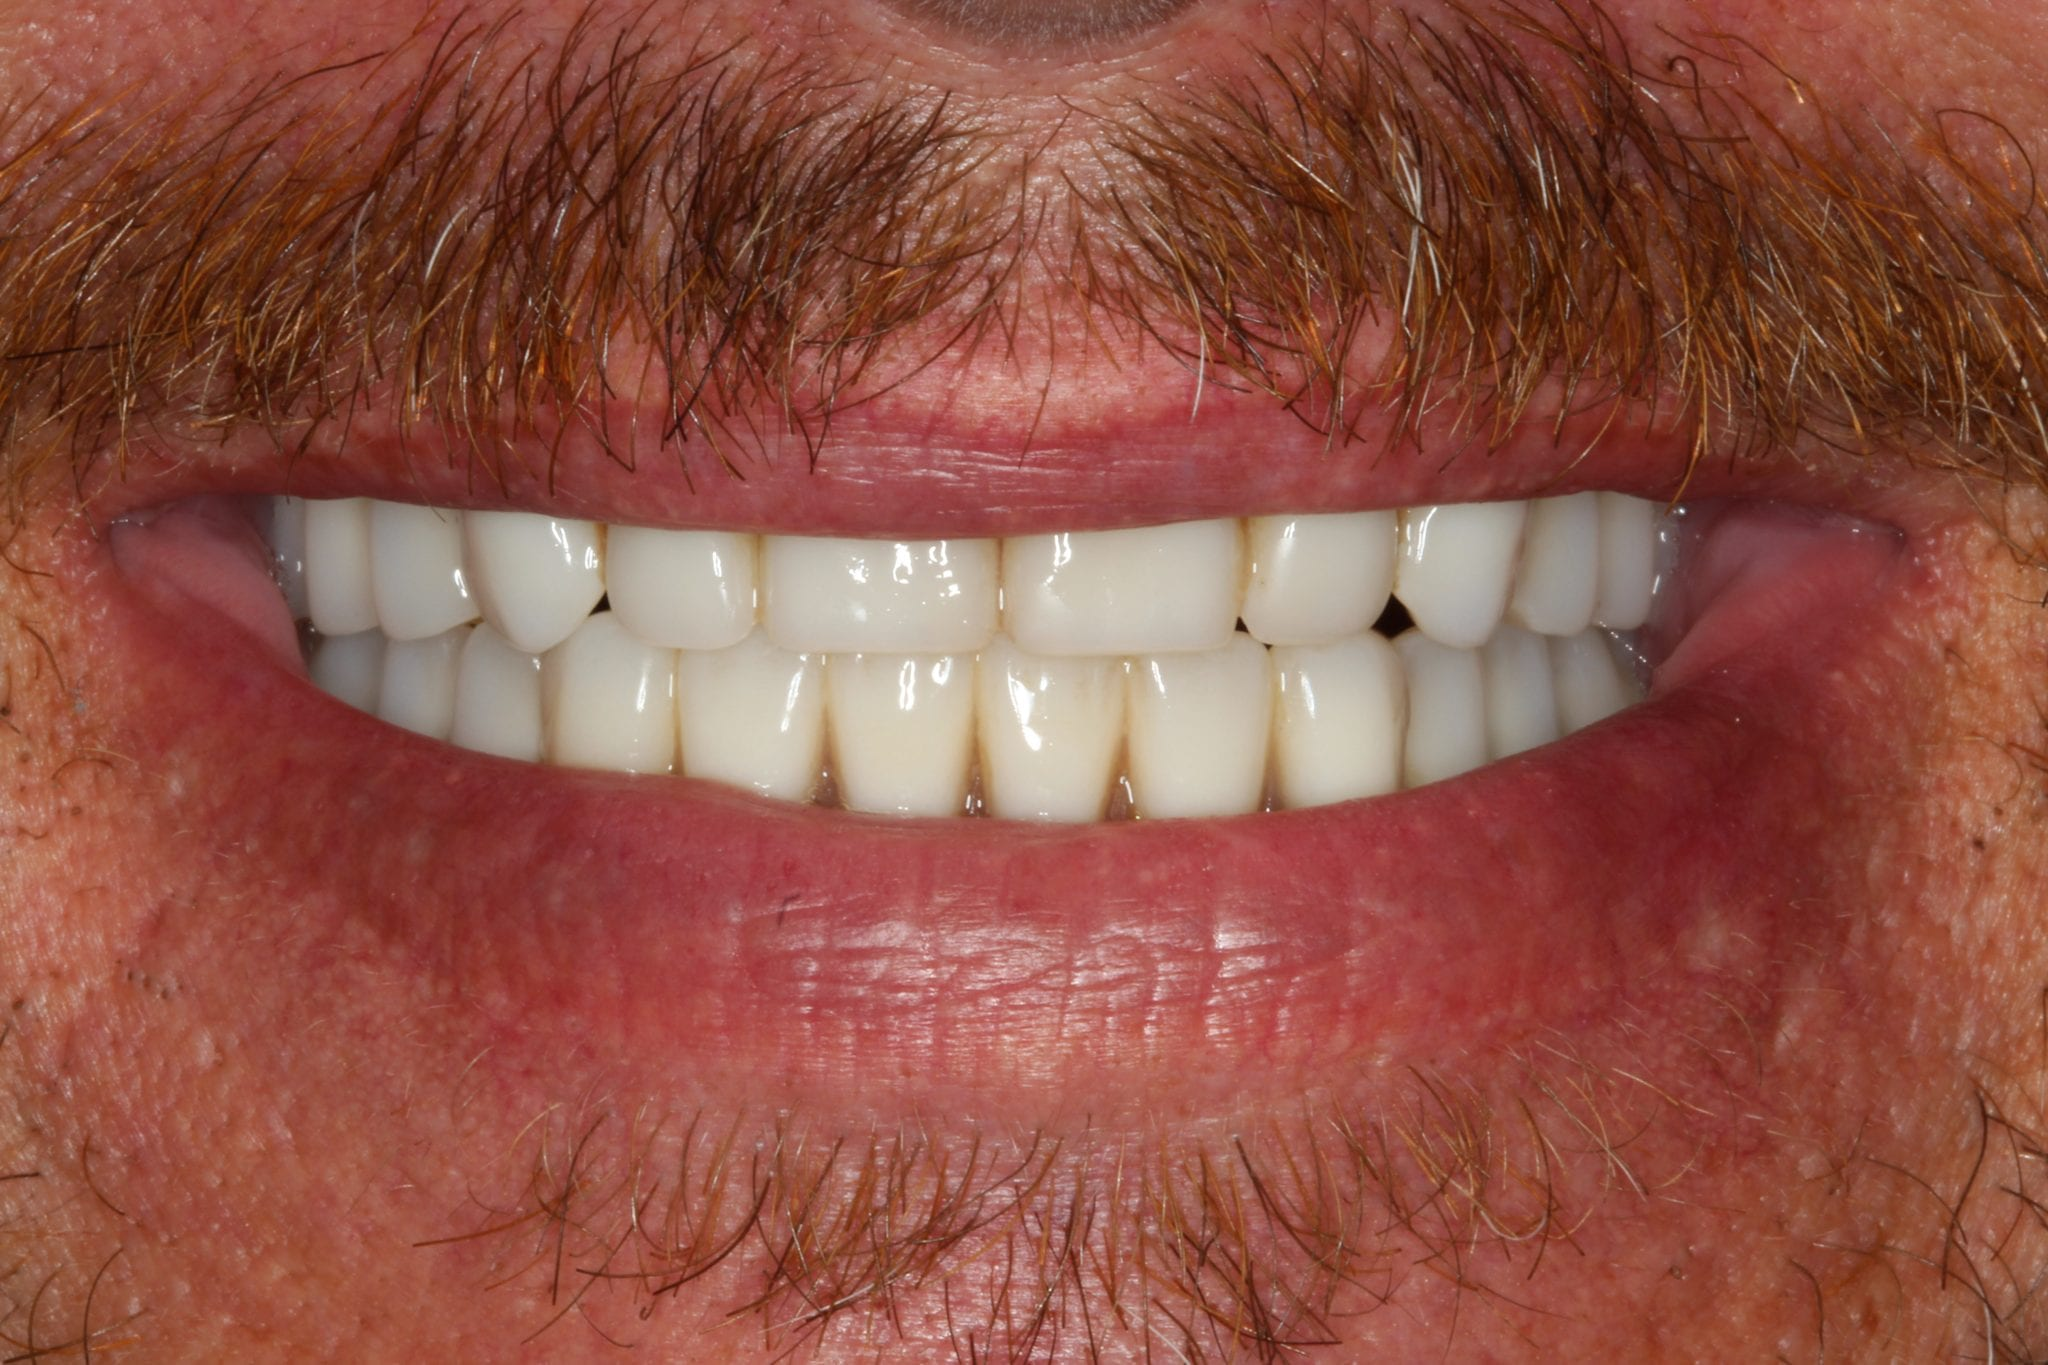 Great looking set of teeth with dental implants